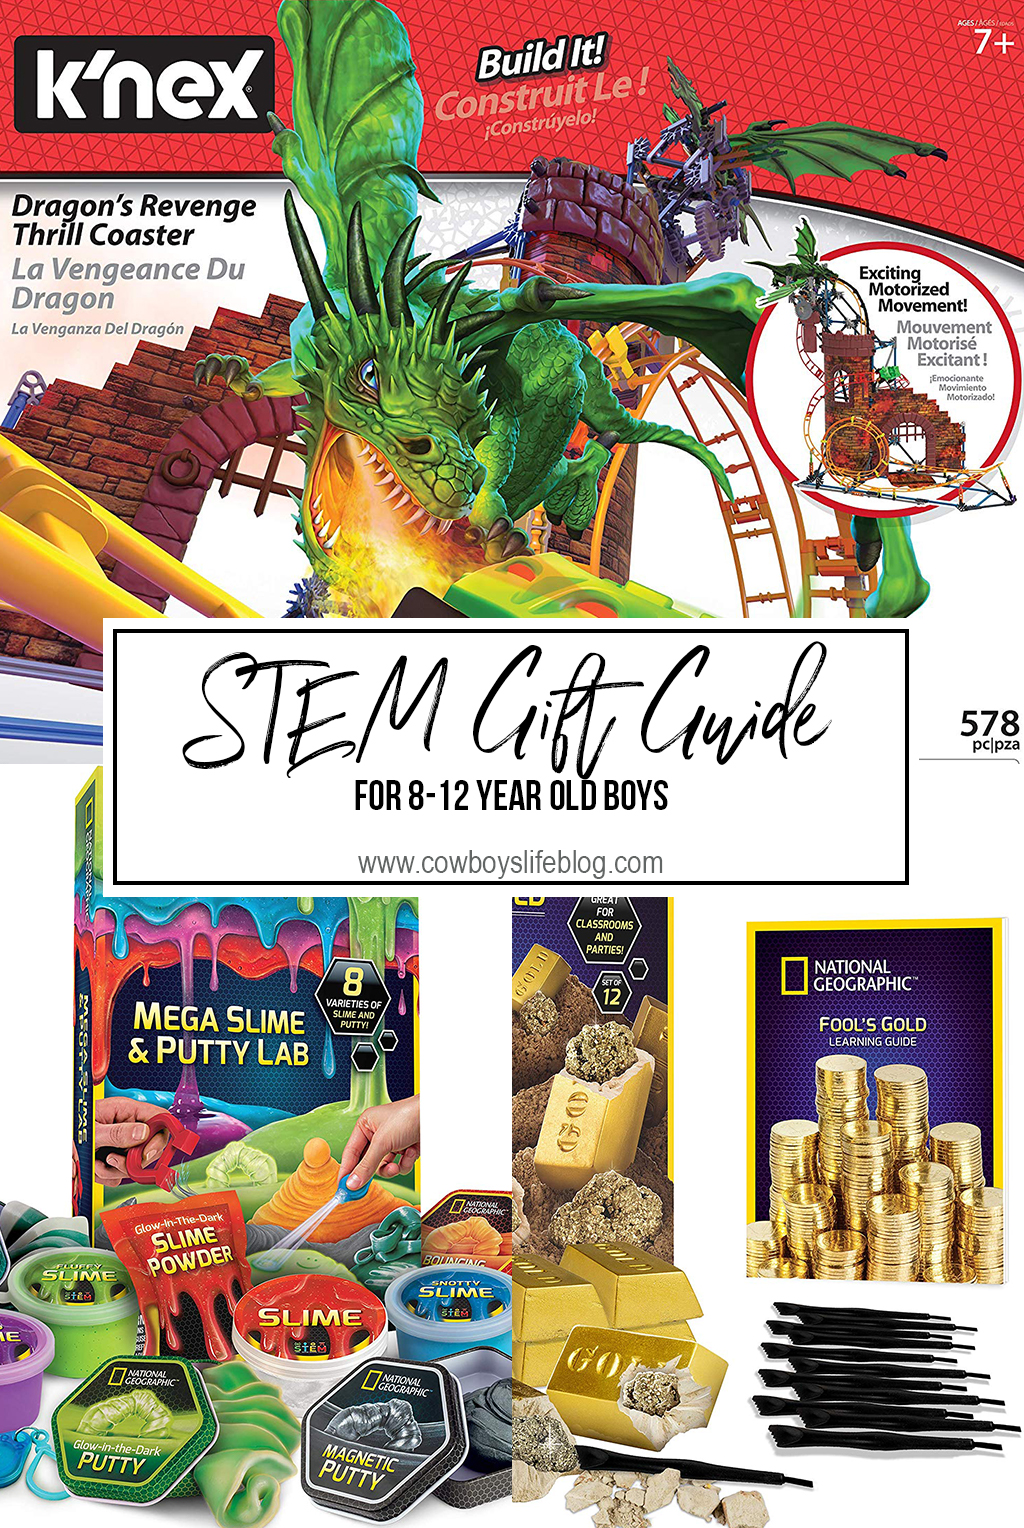 STEM Gifts for 8-12 year old boys